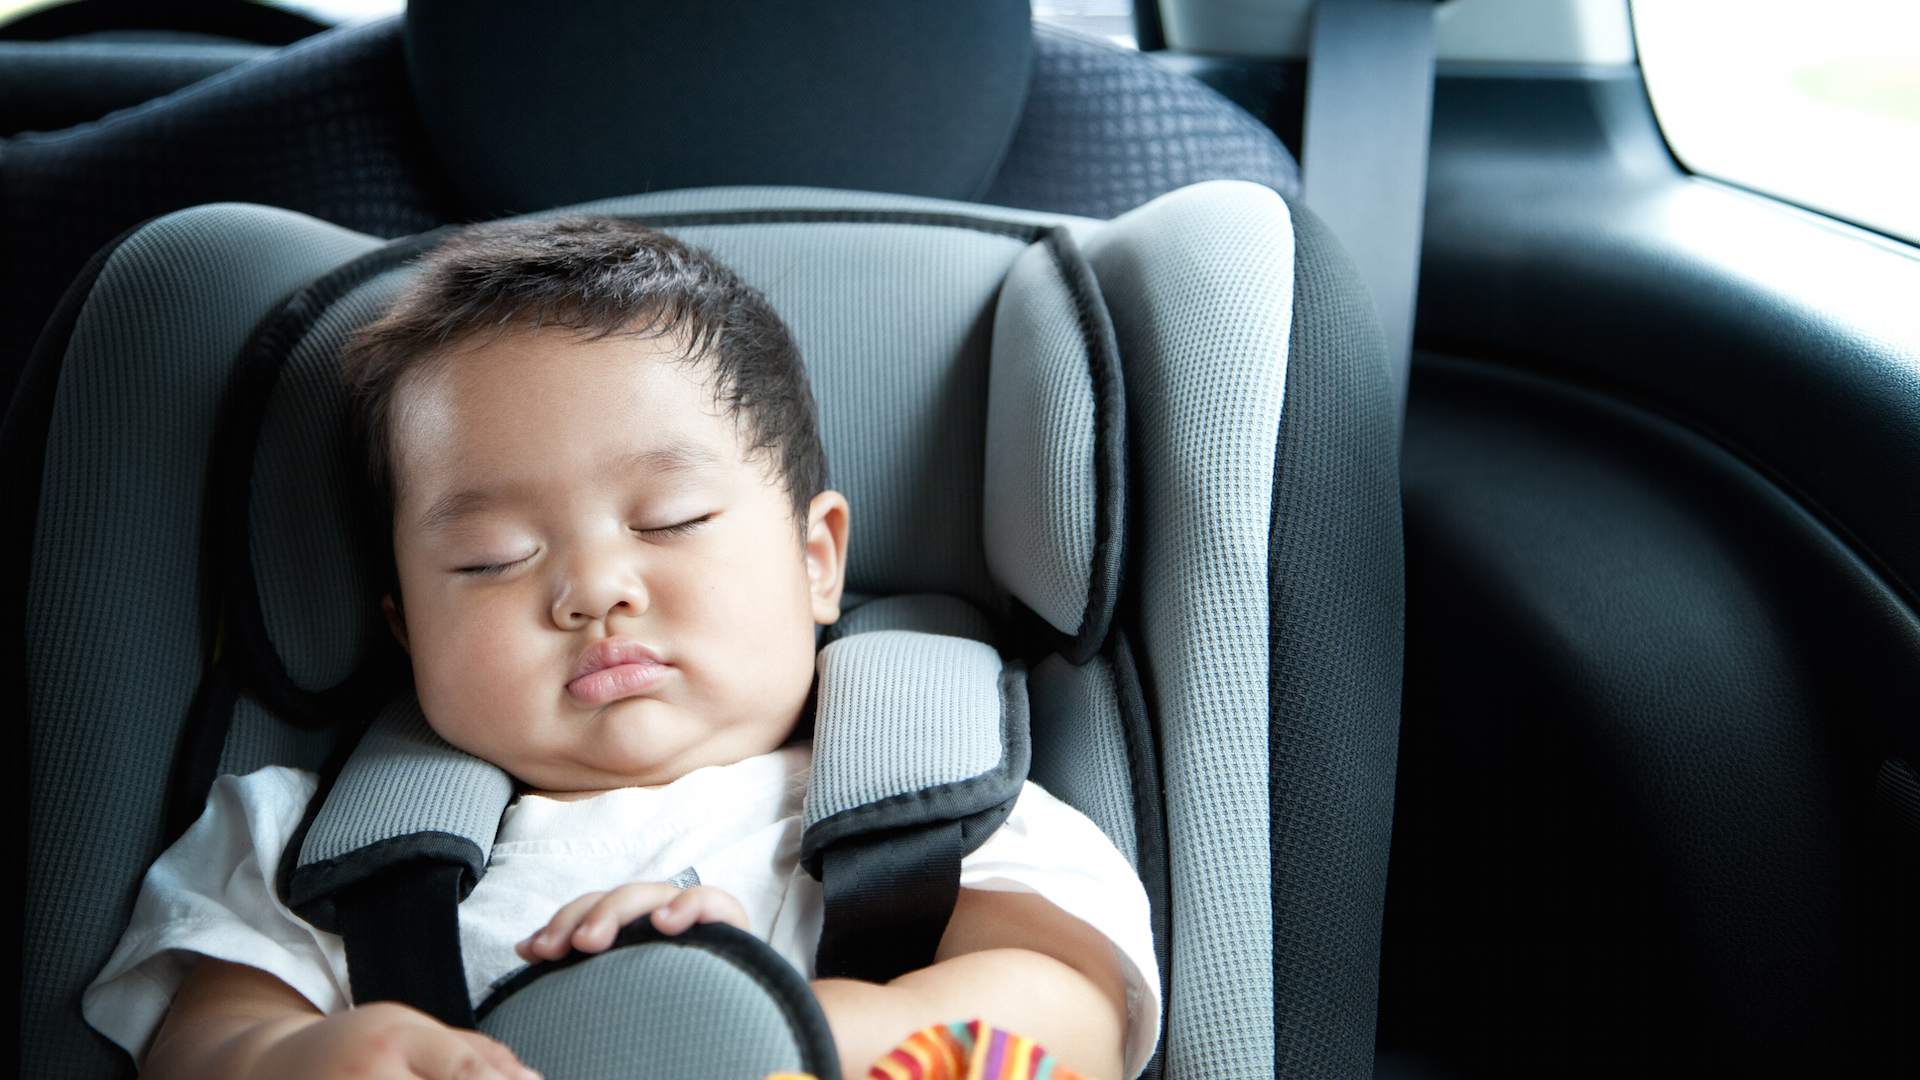 Graco Convertible Car Seat Recall: Are You Affected